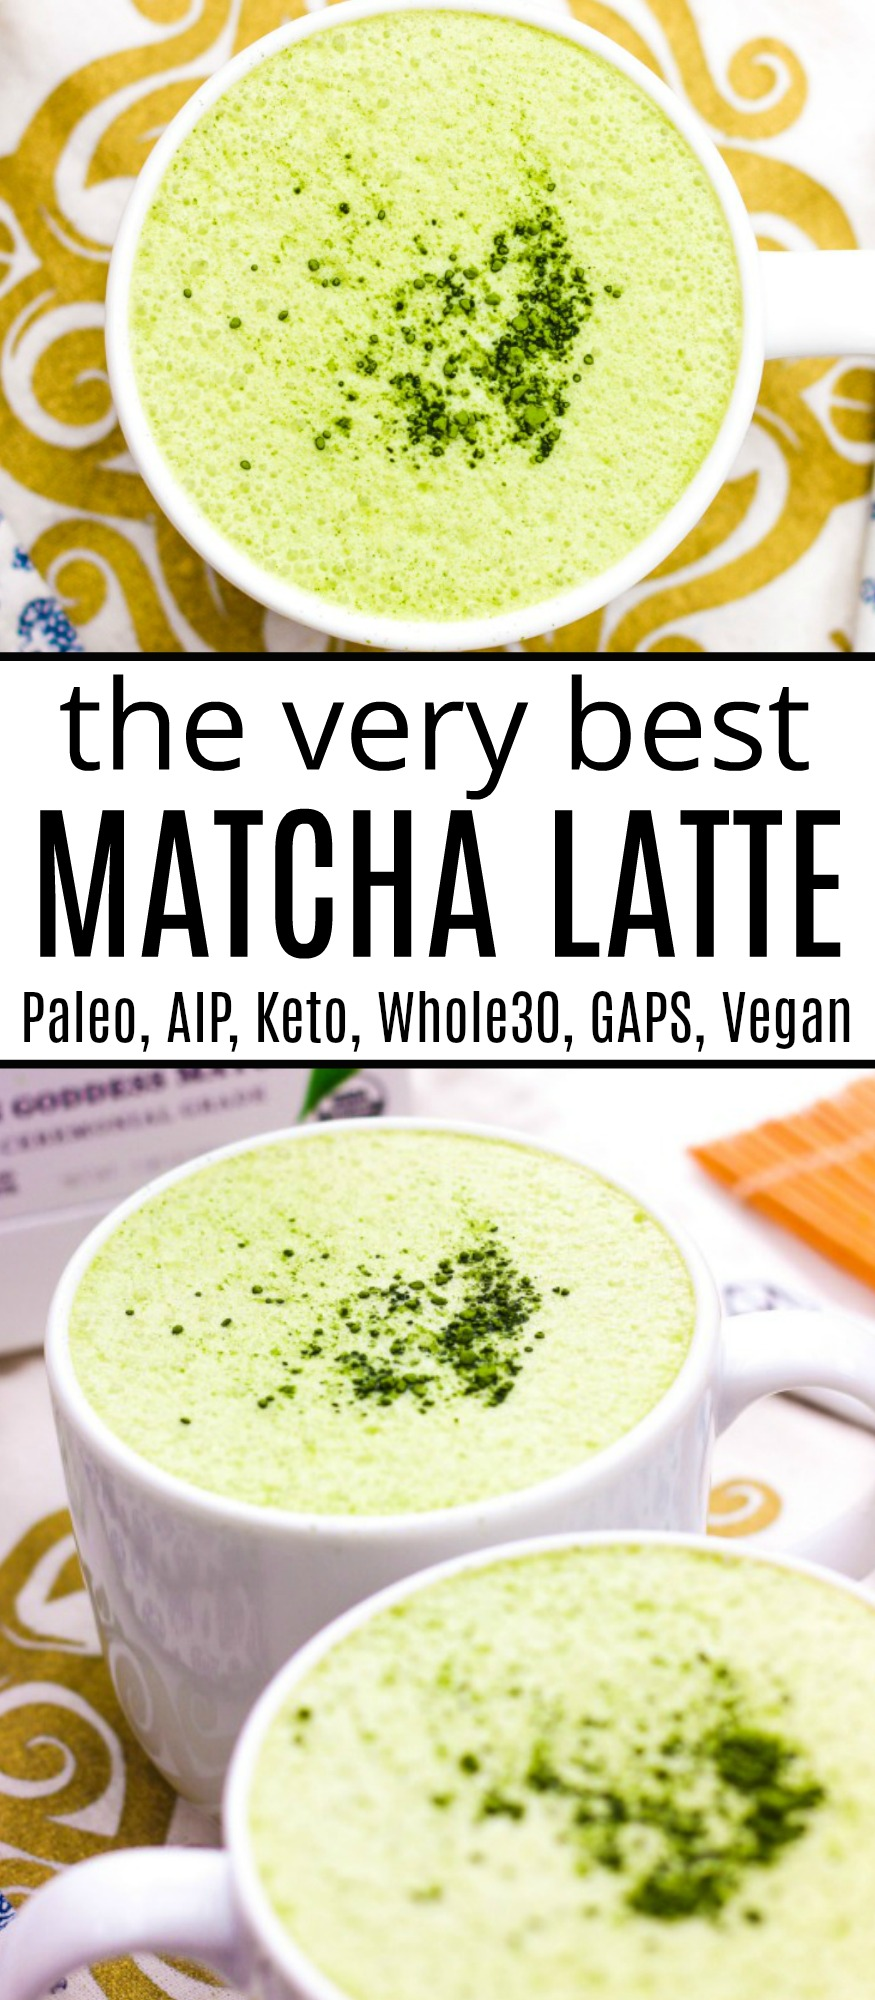 two white mugs with creamy matcha latte is the top image; the bottom photo shows an empty mug of matcha latte